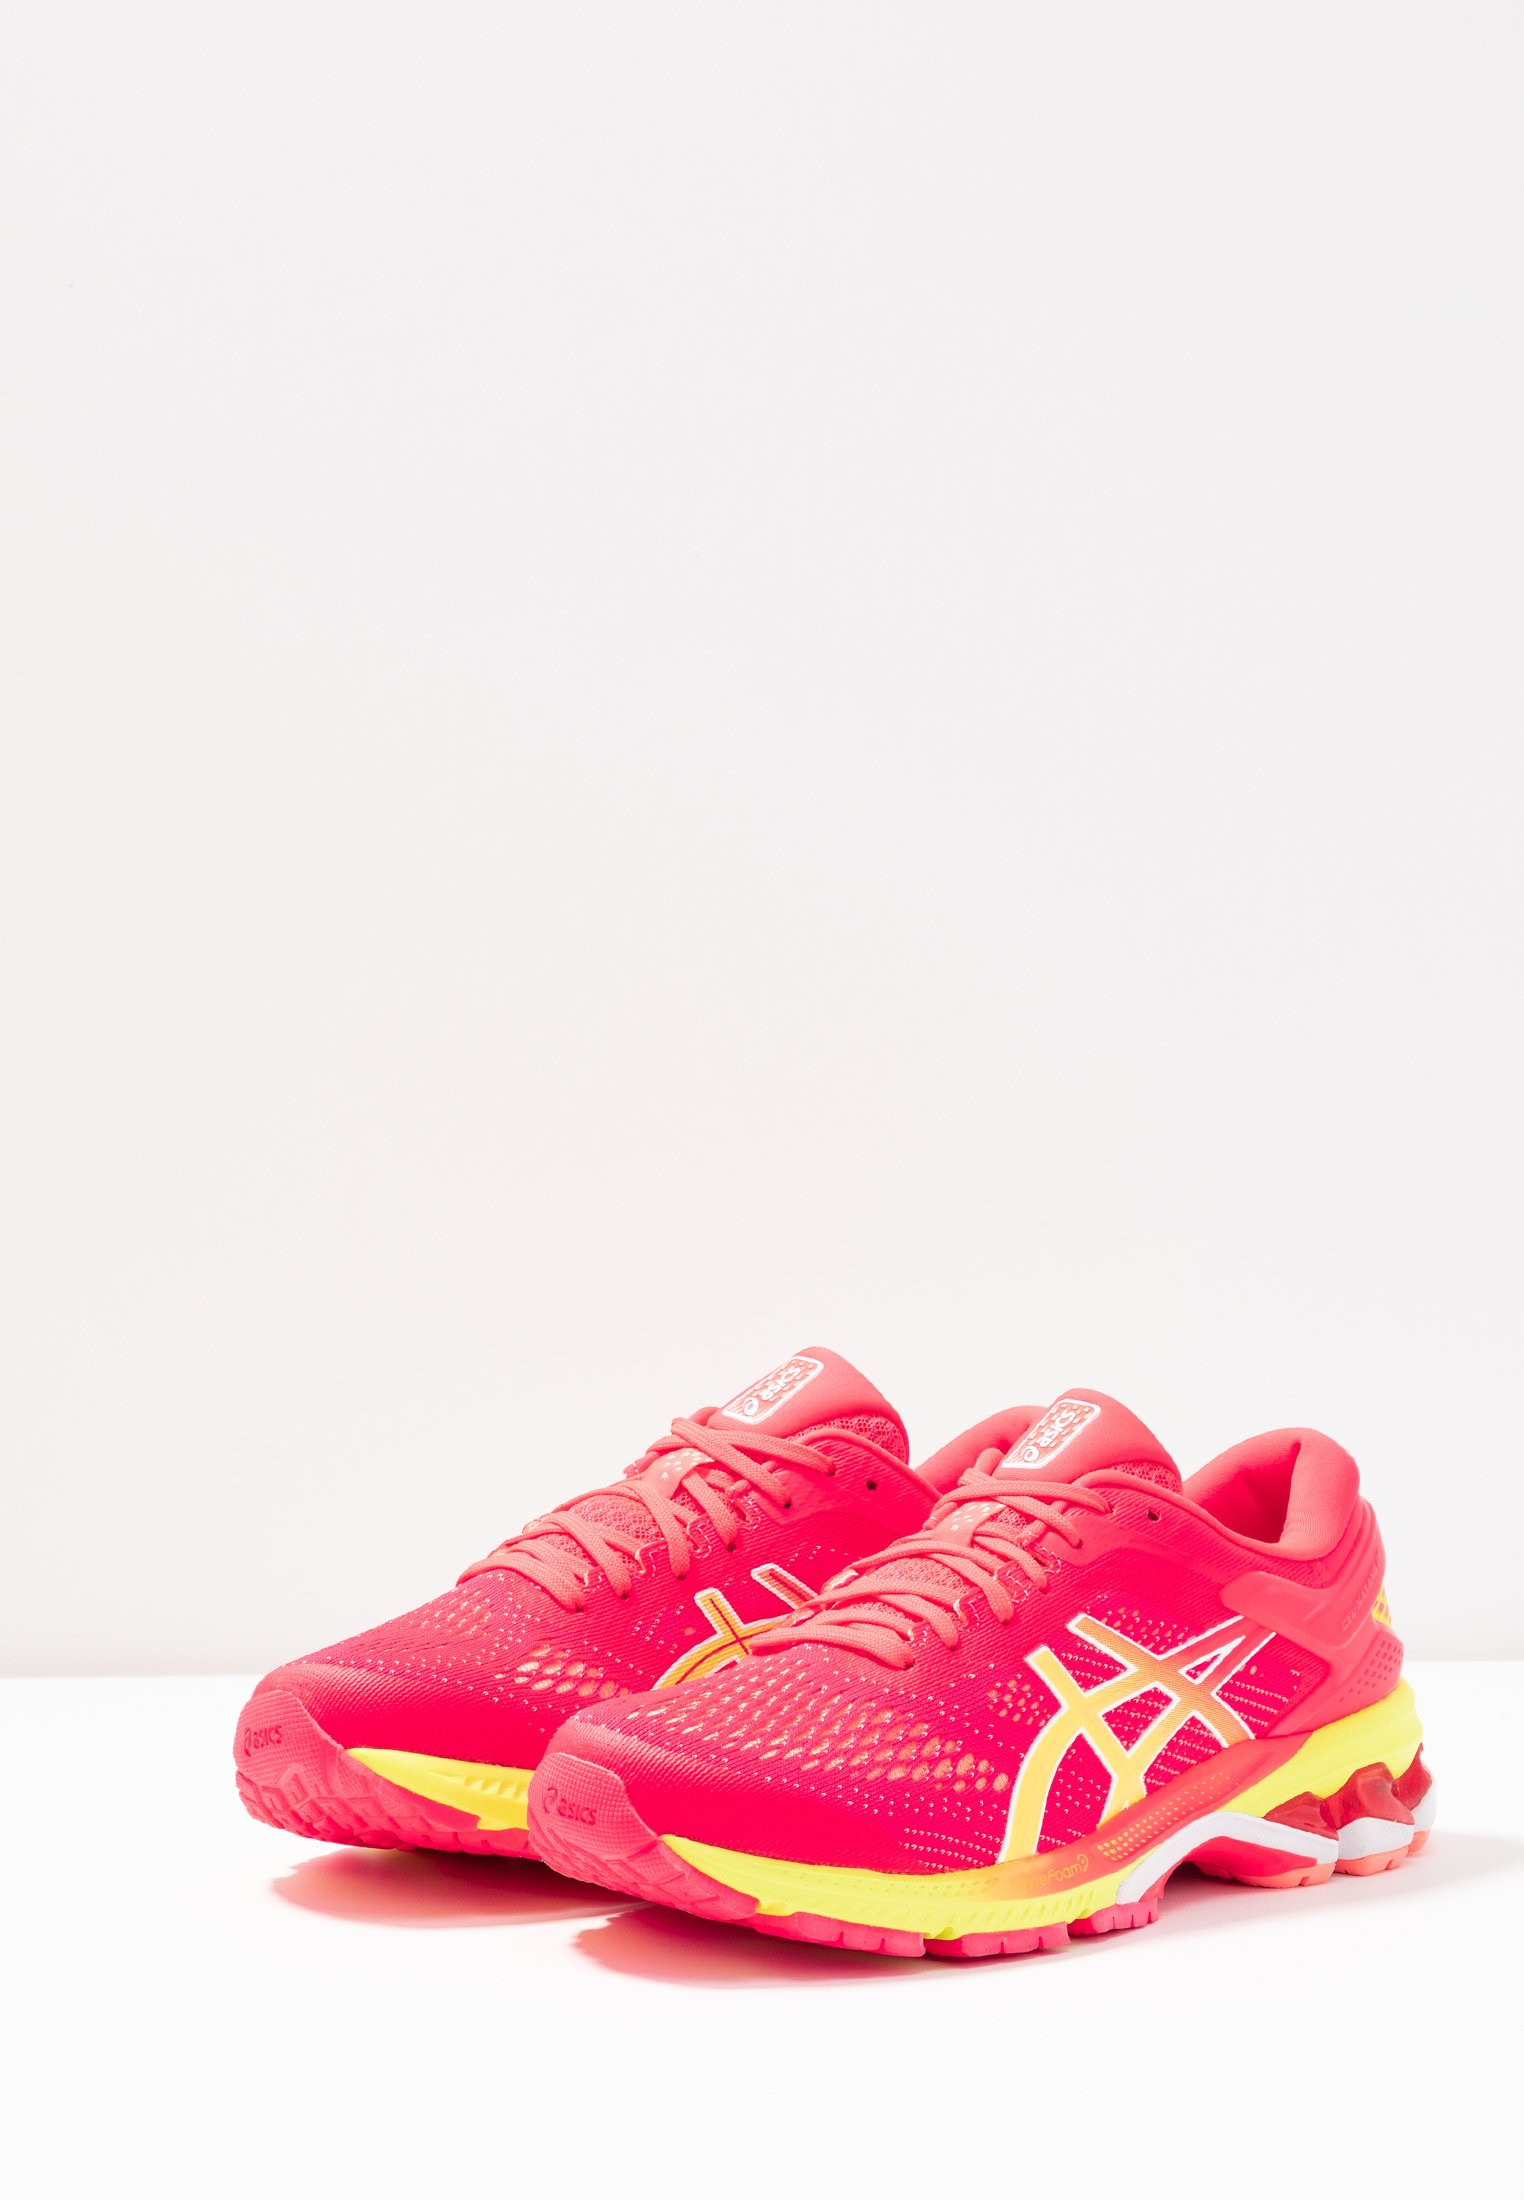 GEL-KAYANO 26 - Laufschuh Neutral - laser pink/sour yuzu